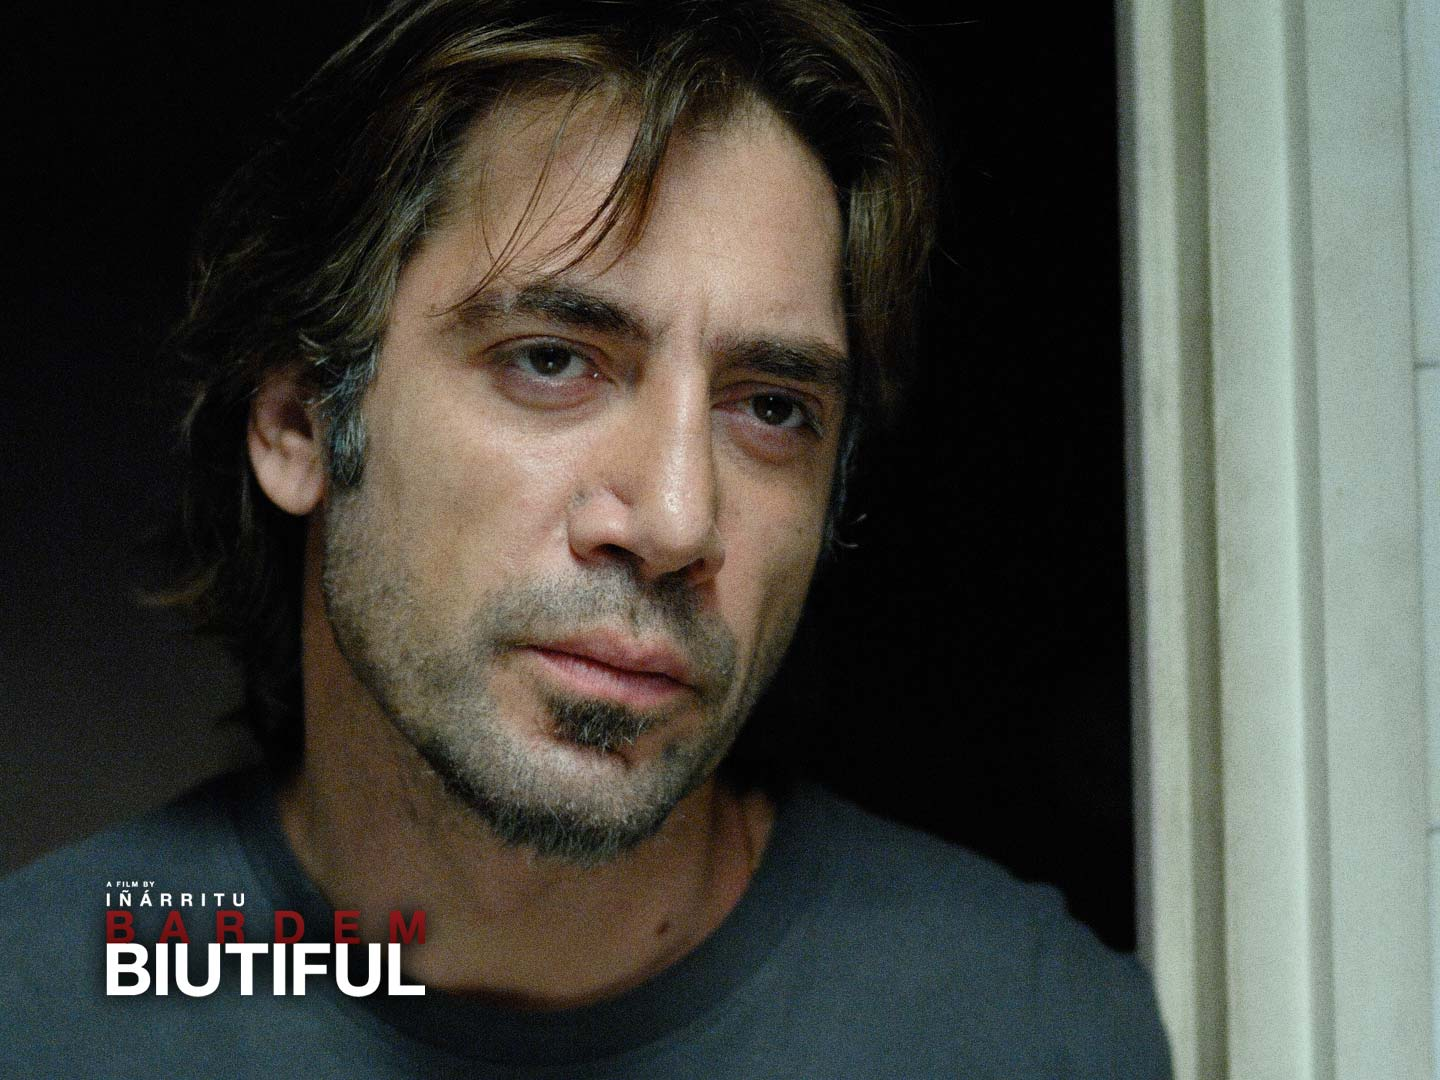 Biutiful Wallpaper download - Javier Bardem in a close-up for Biutiful, made into a wallpaper from a still & his Cannes Best Actor winning performance for the new movie